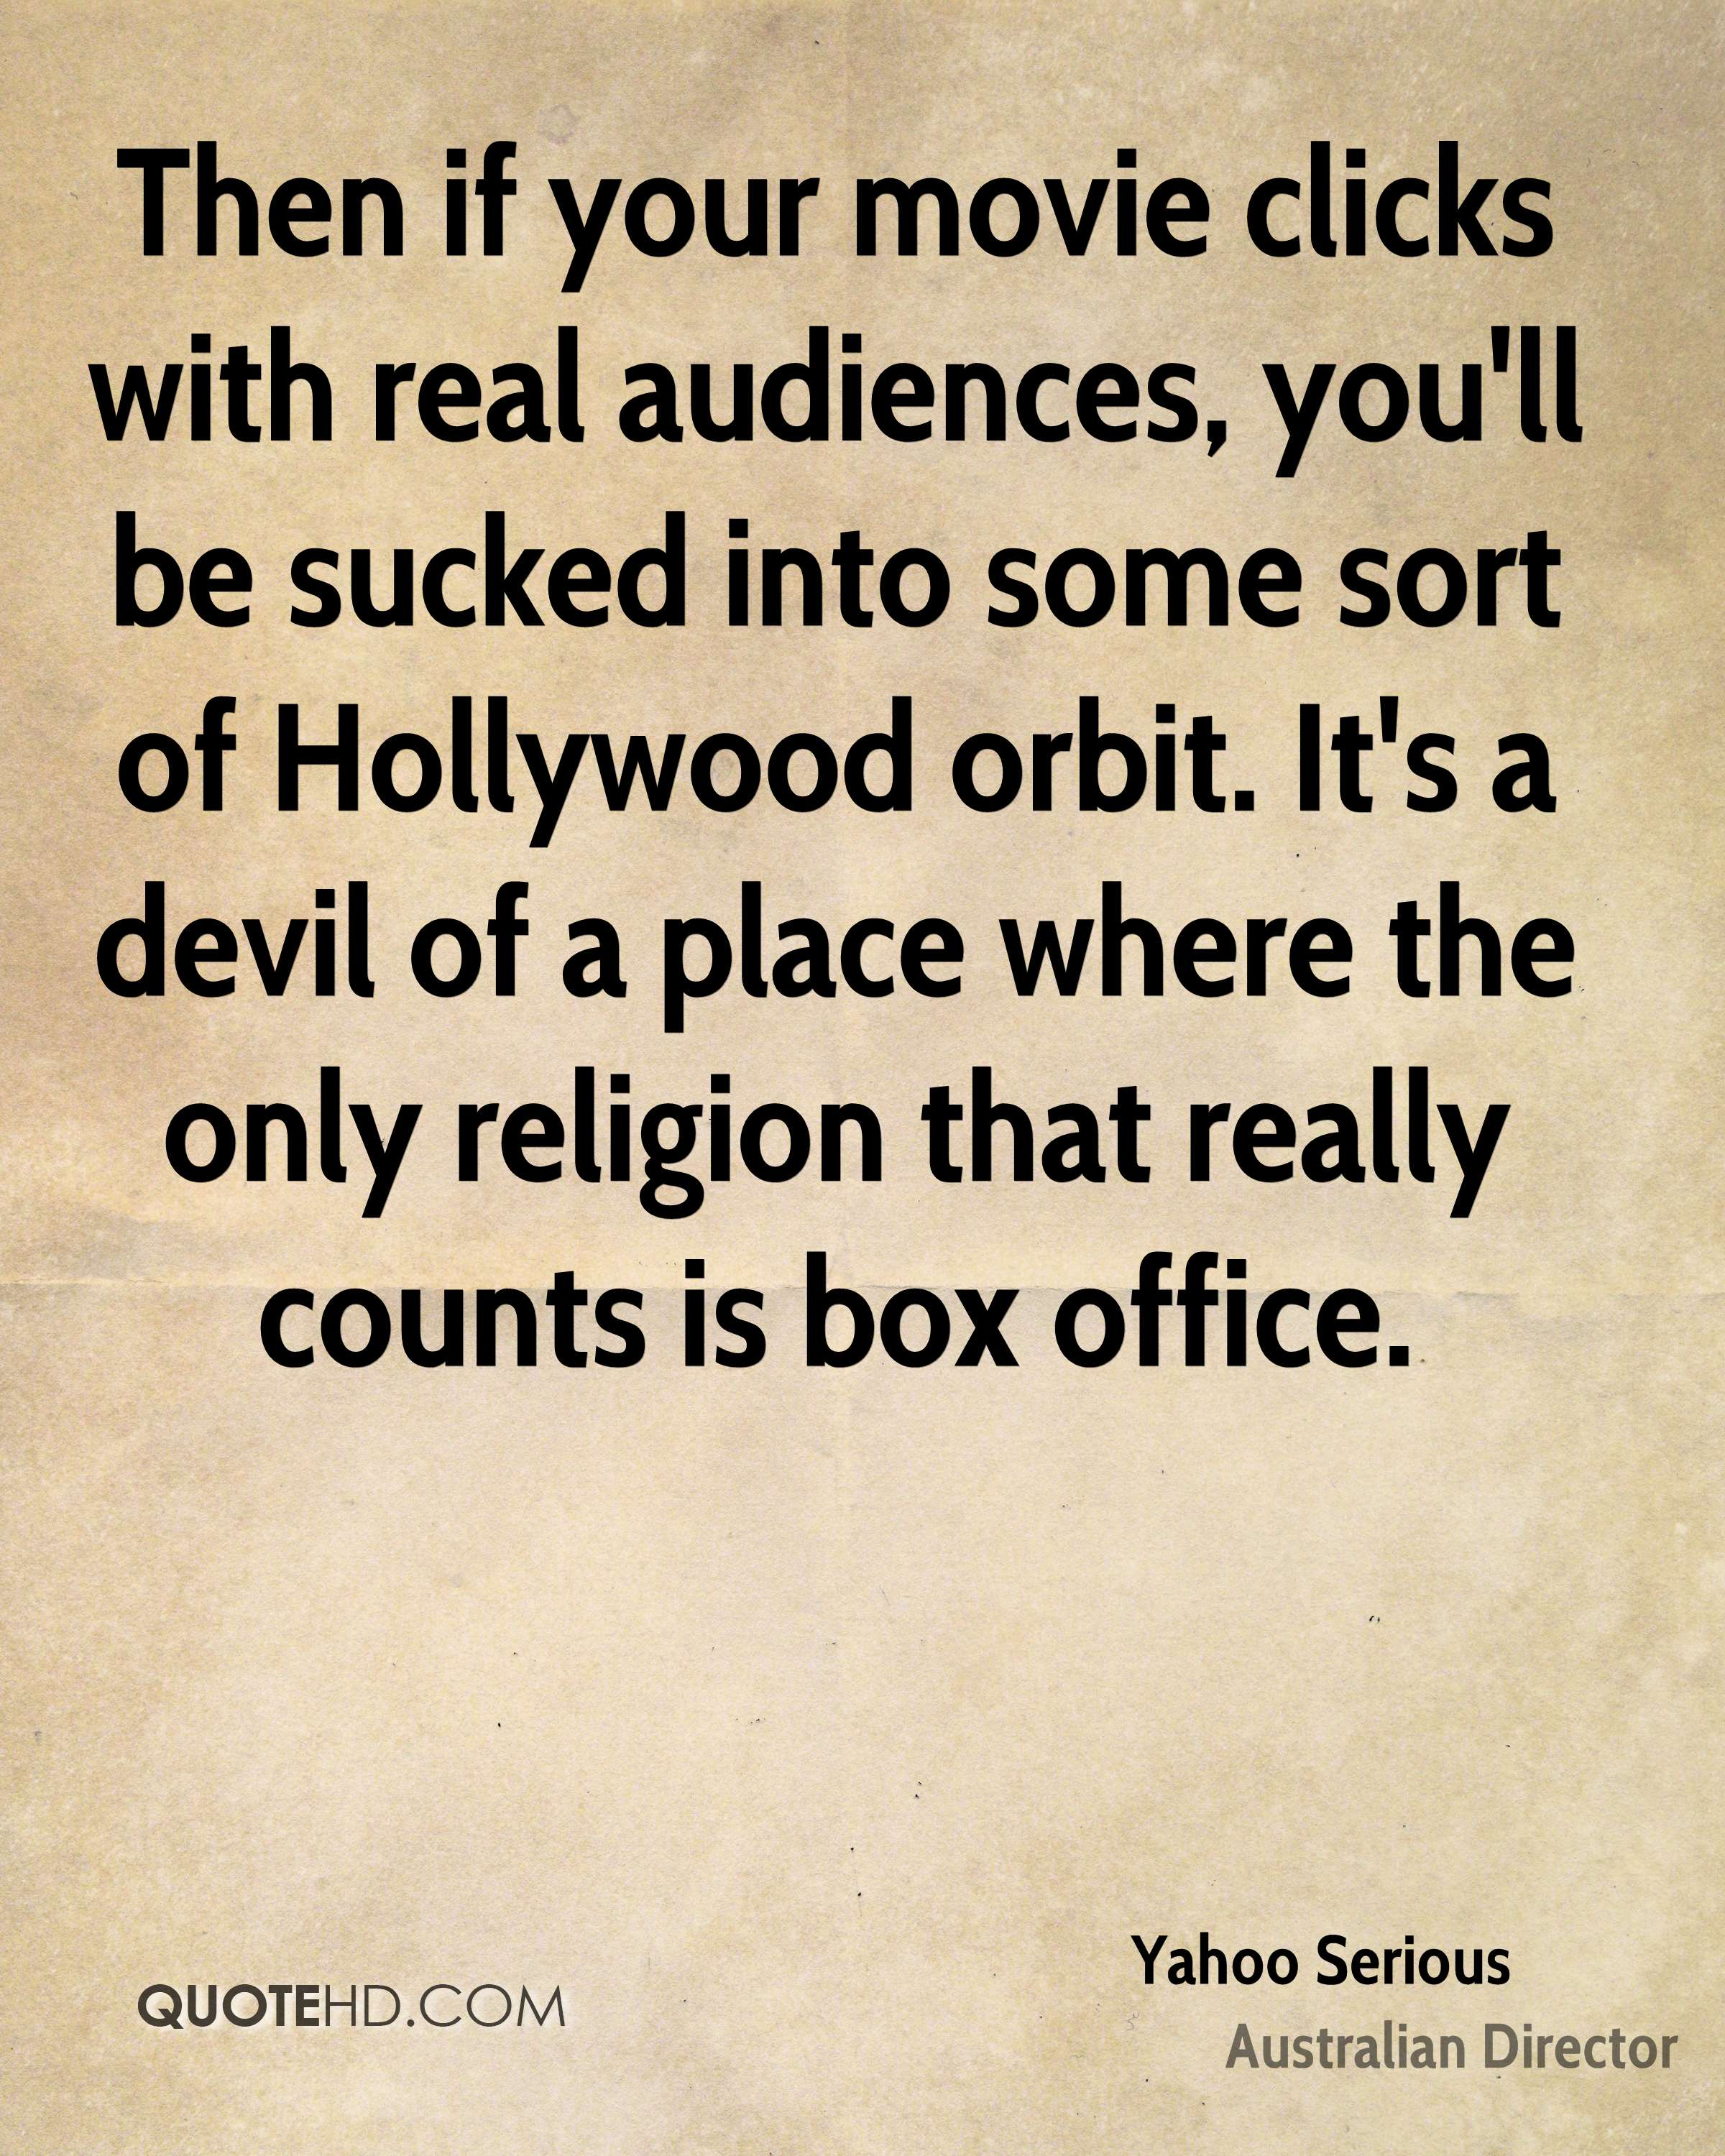 Then if your movie clicks with real audiences, you'll be sucked into some sort of Hollywood orbit. It's a devil of a place where the only religion that really counts is box office.